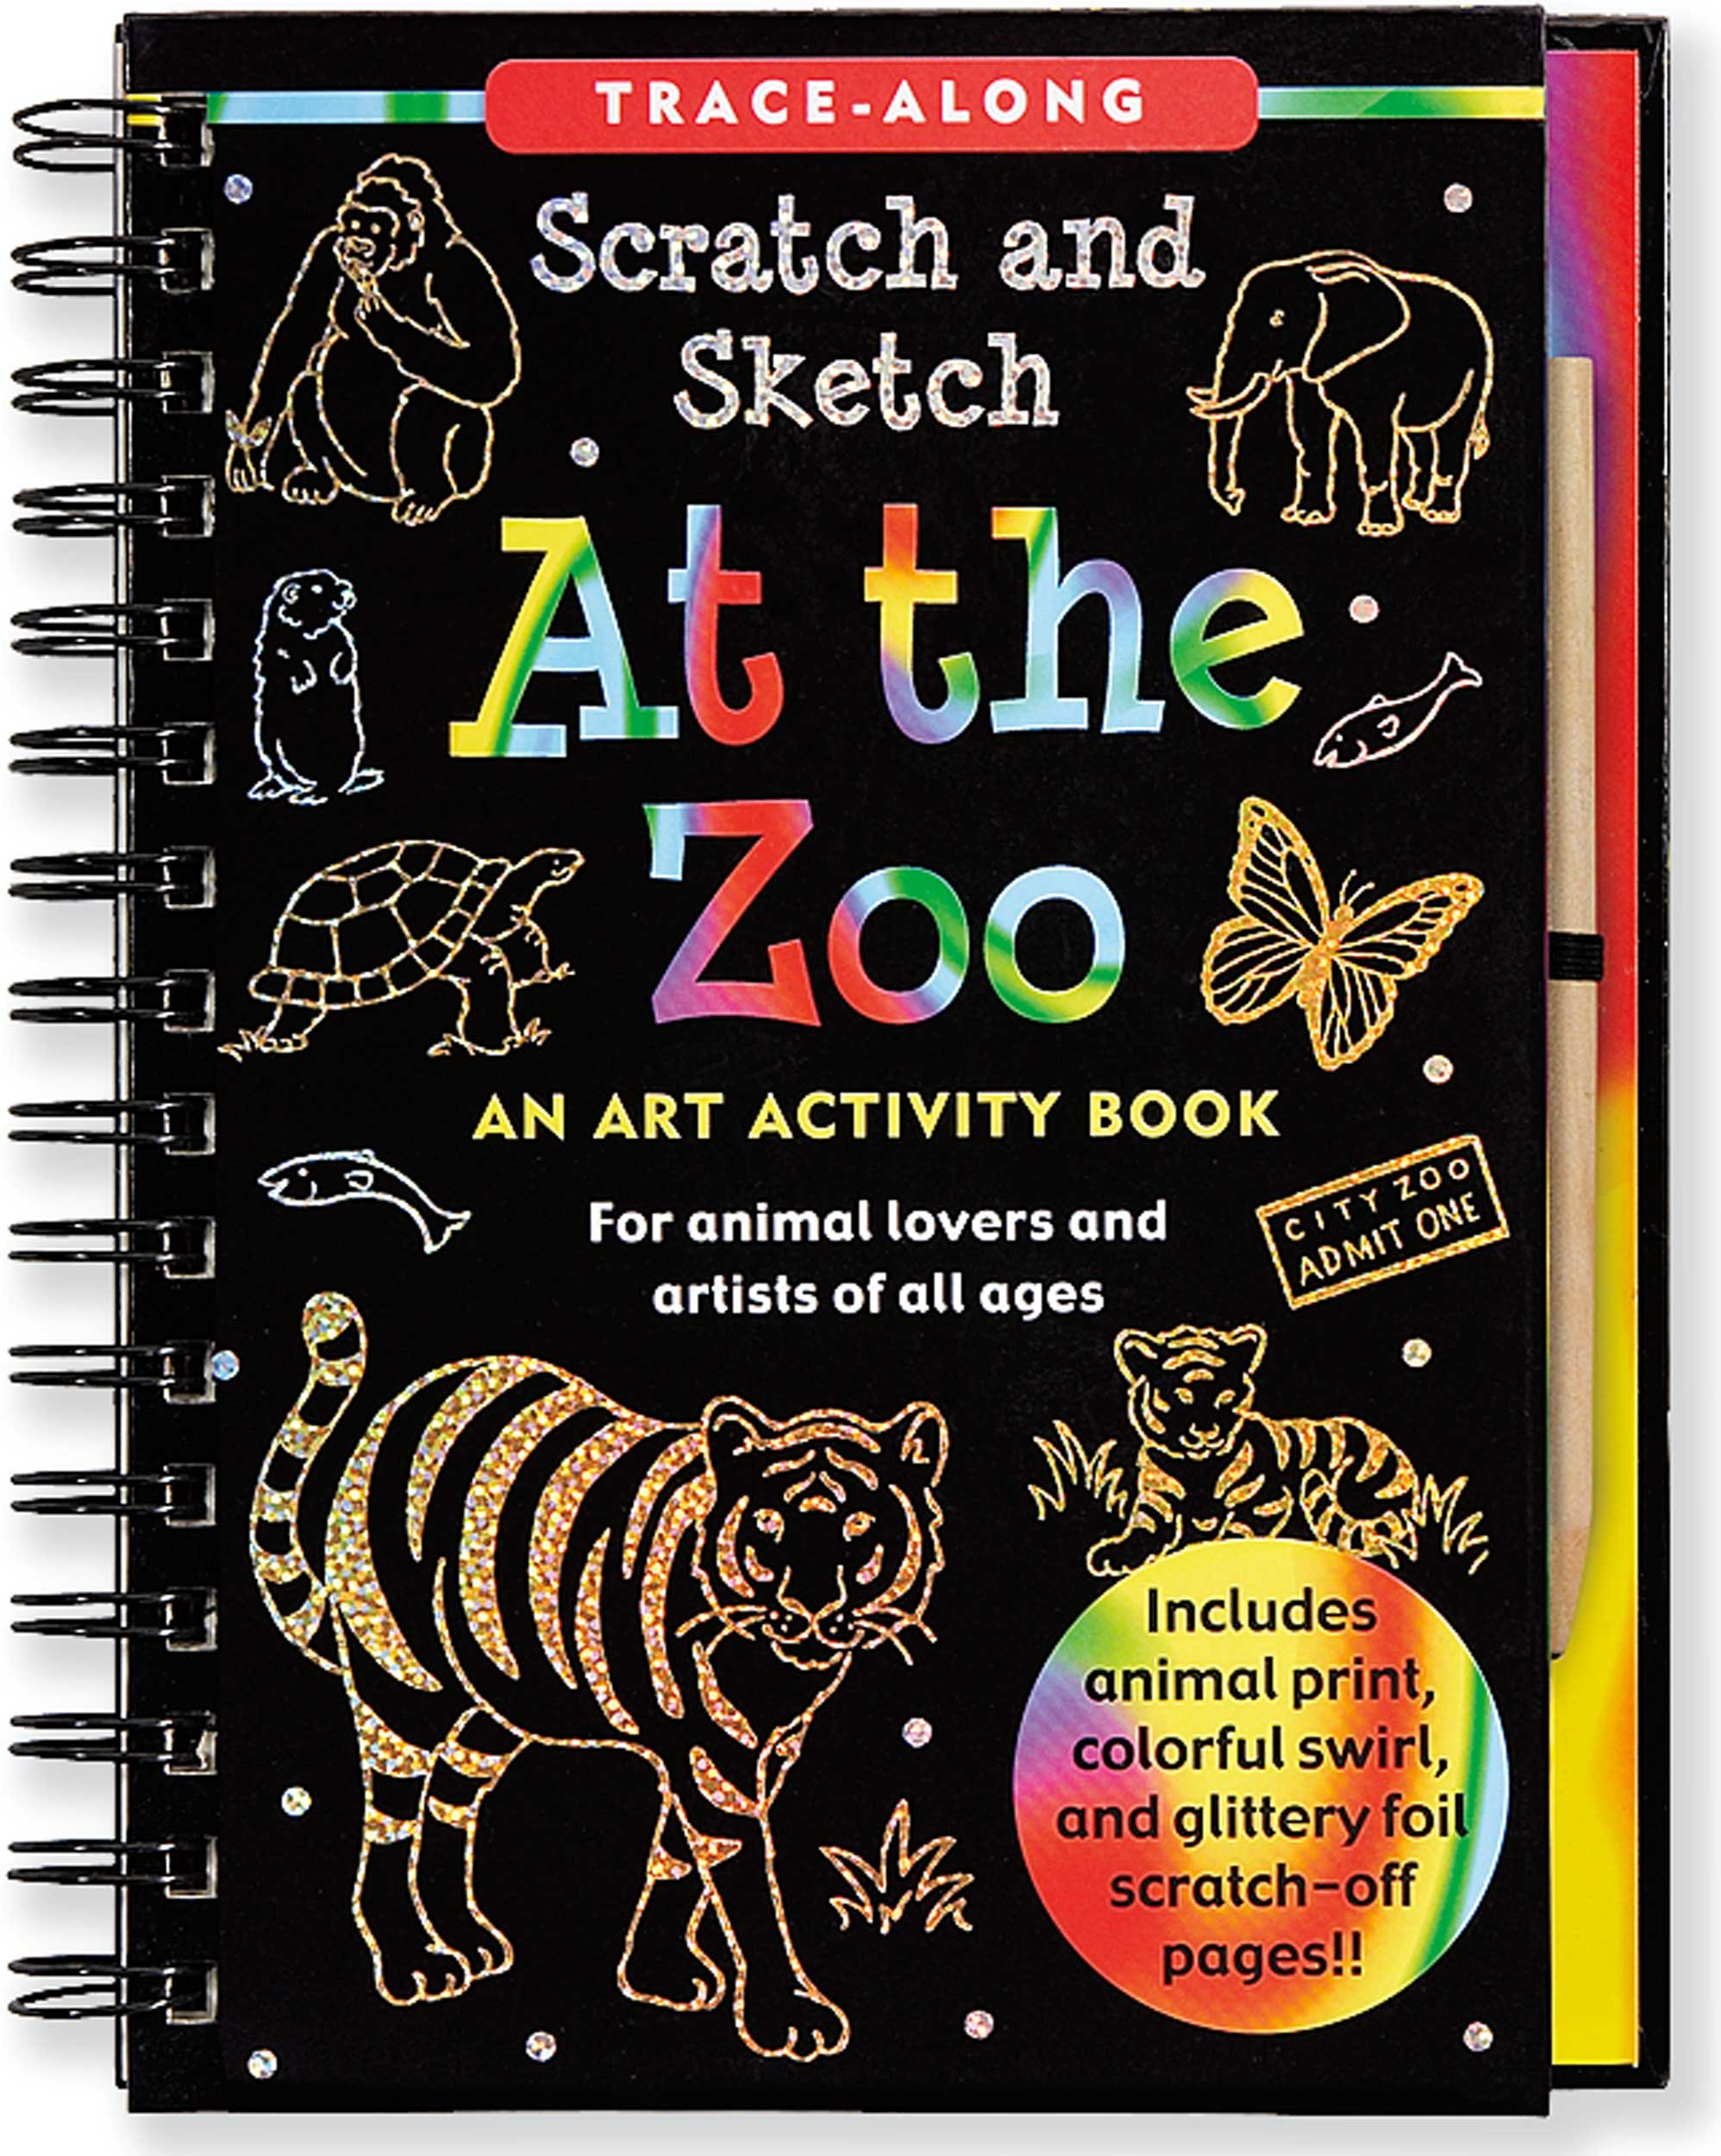 At the zoo scratch sketch an art activity book for animal lovers at the zoo scratch sketch an art activity book for animal lovers and artists of all ages trace along scratch and sketch lee nemmers fandeluxe Image collections